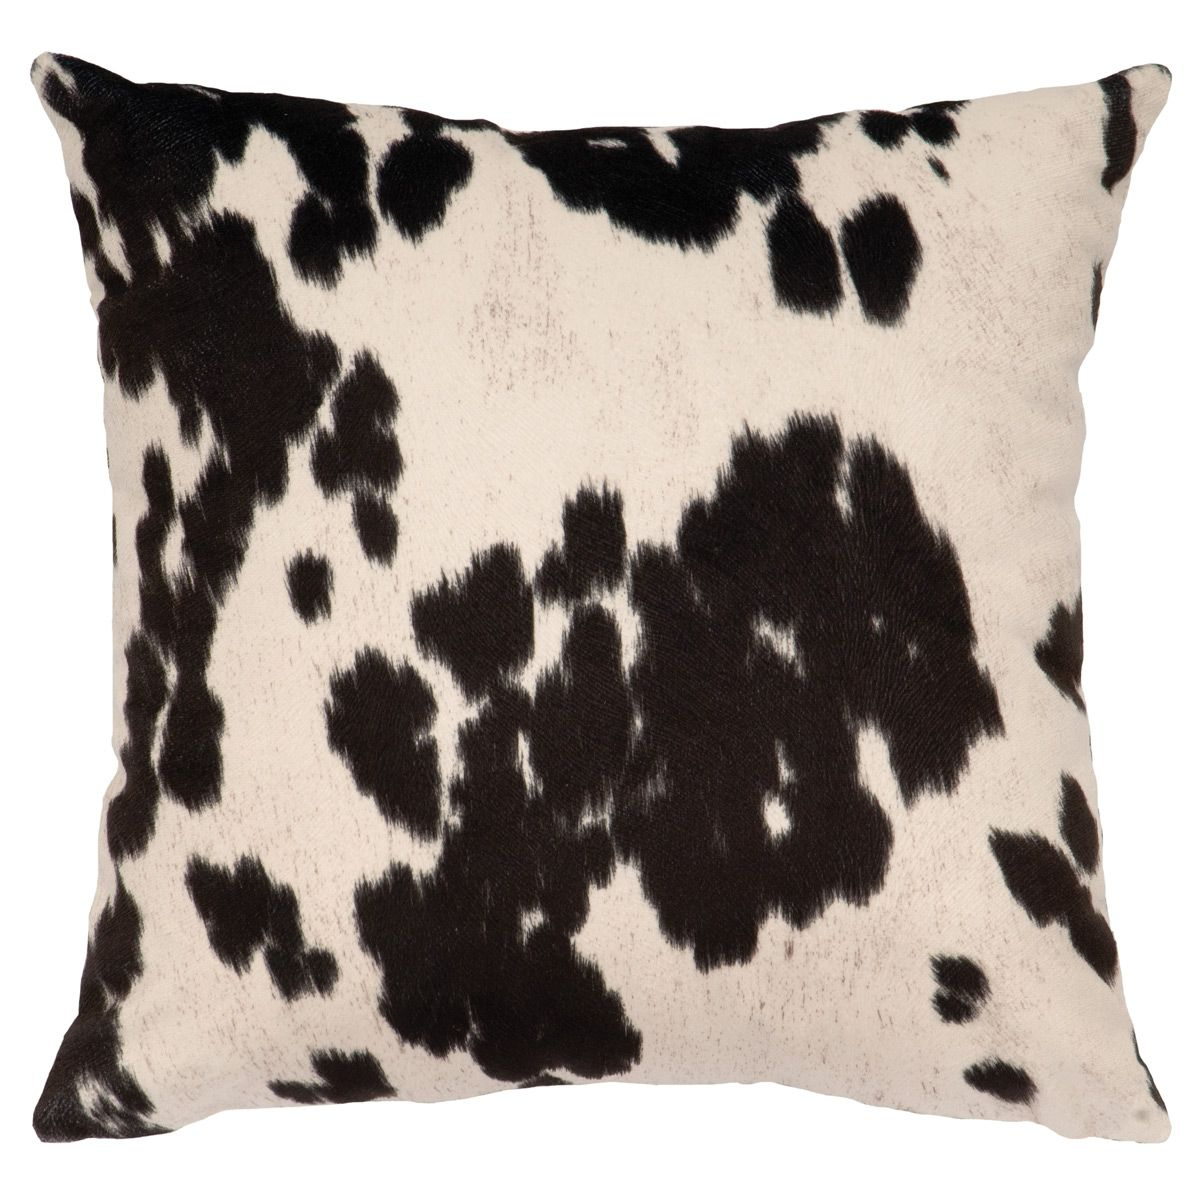 Udder Domino Square Pillow